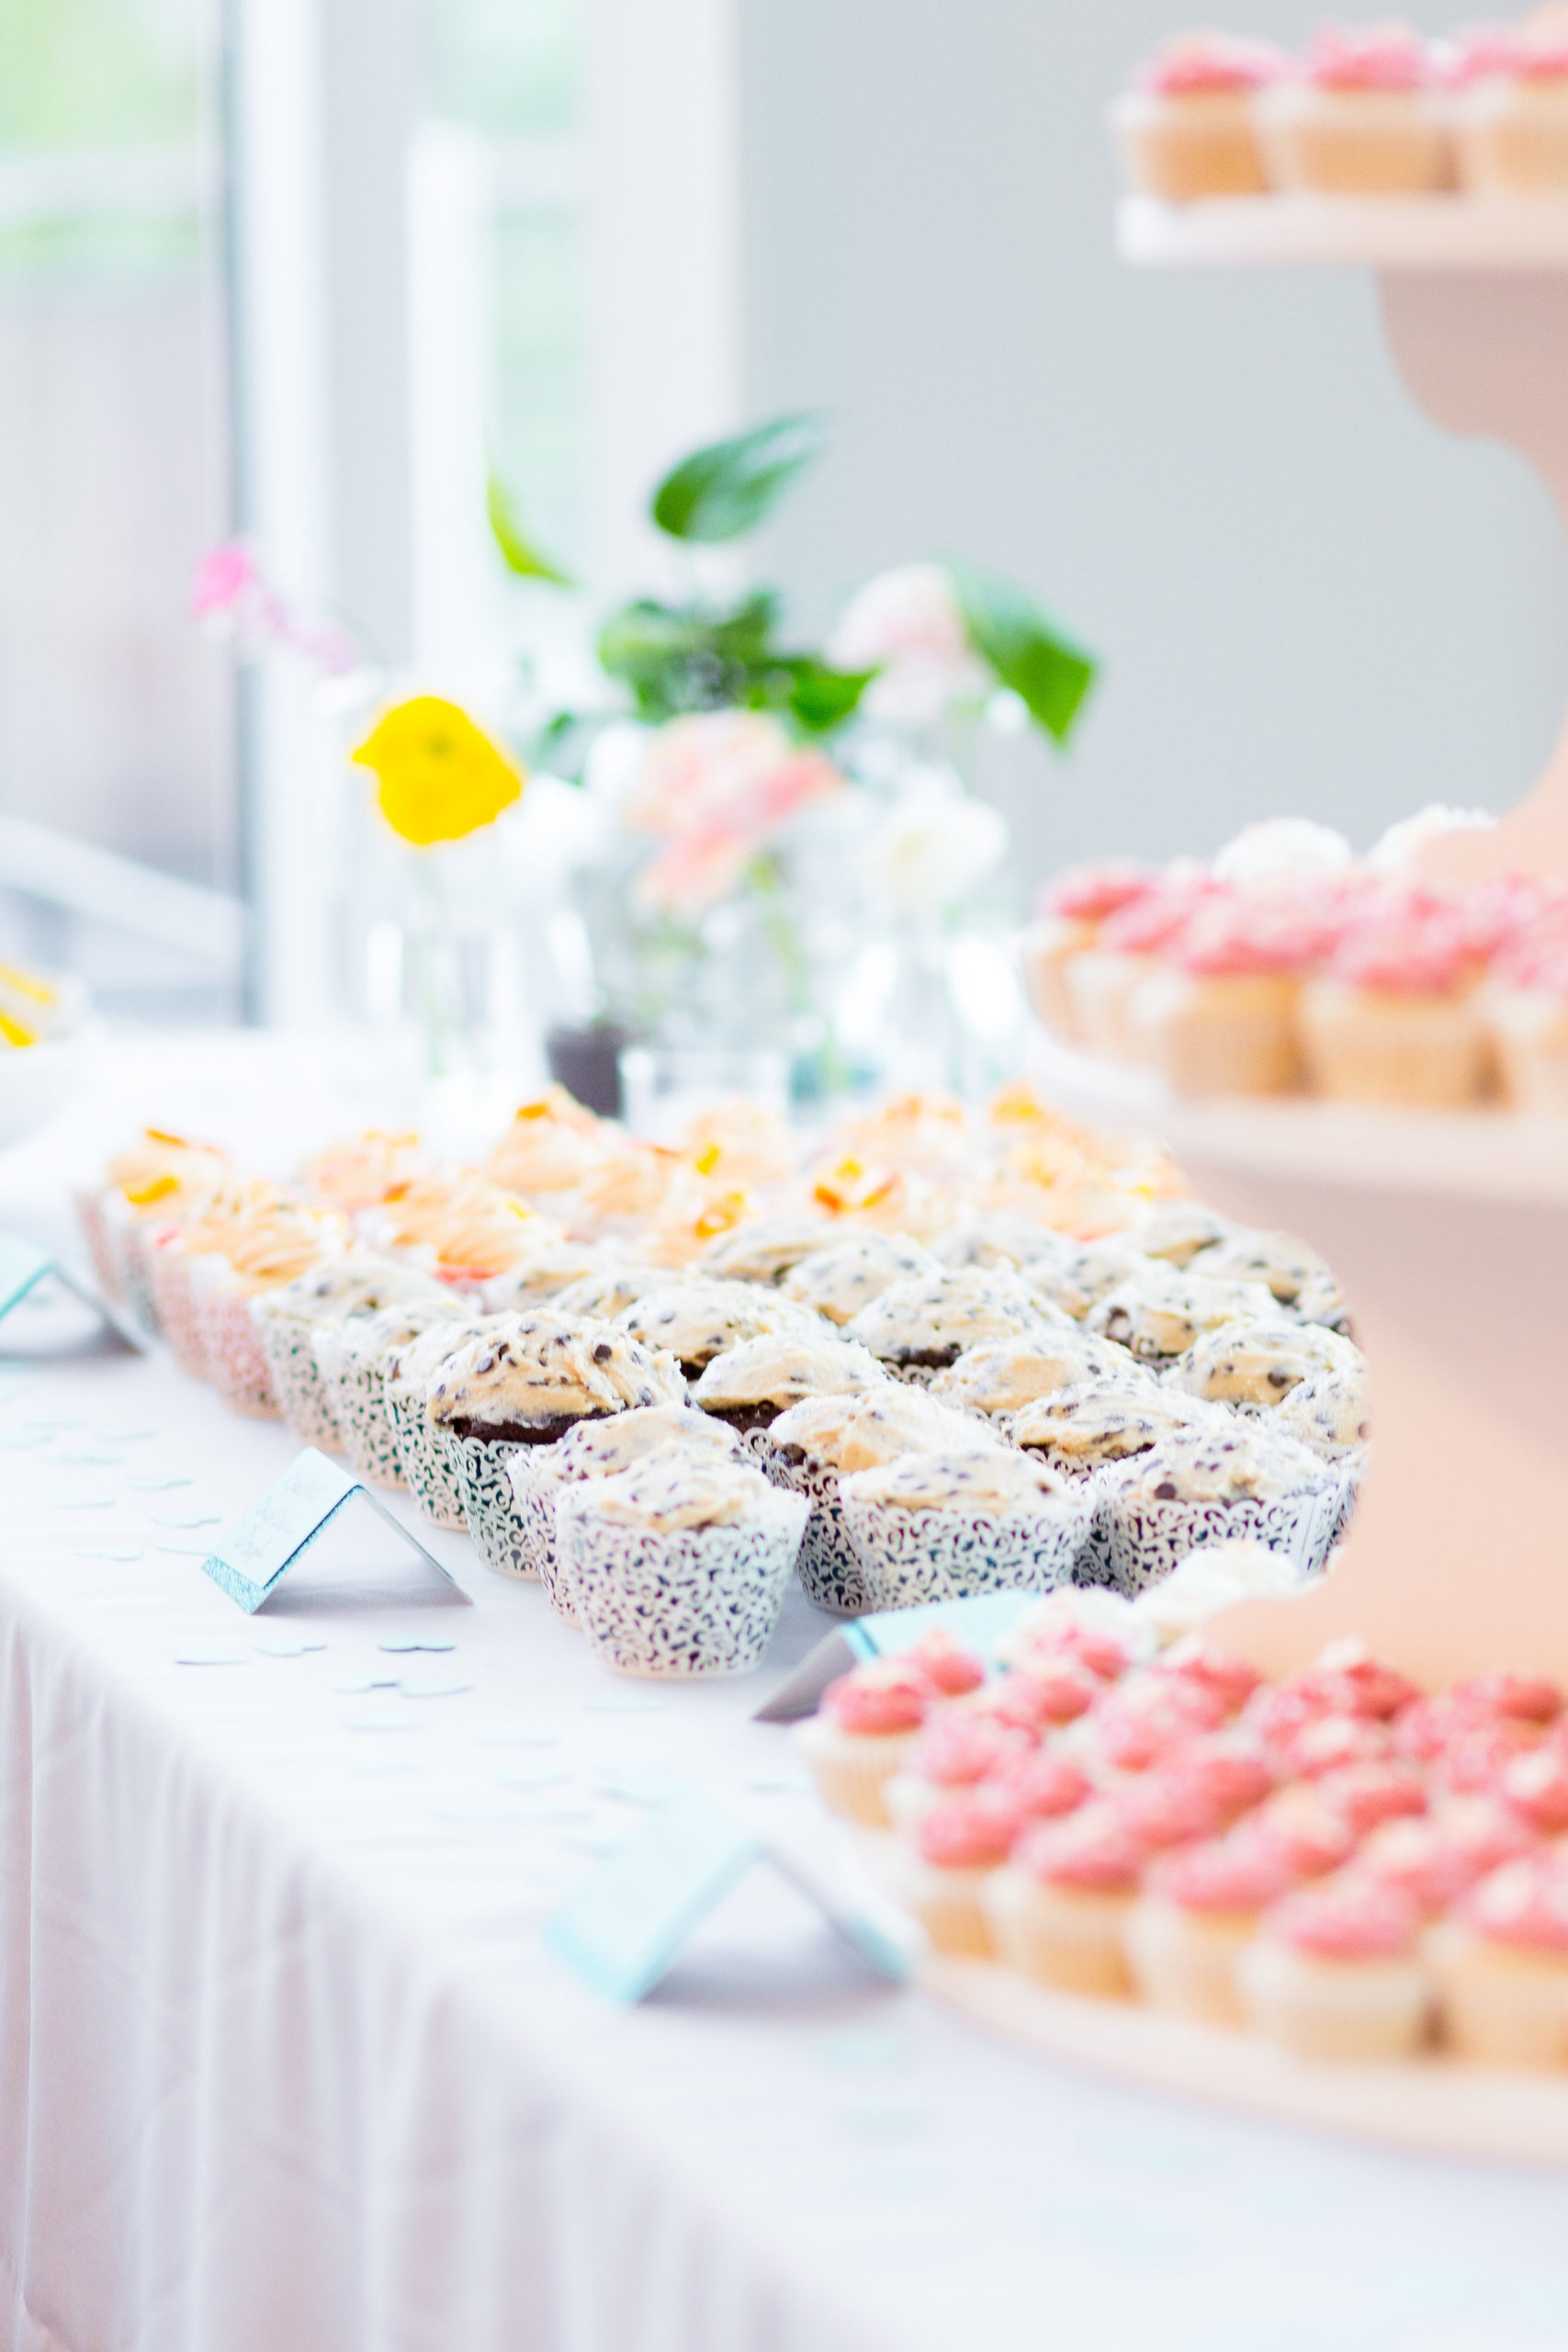 View More: https://taylorrose.pass.us/ethical-wedding-with-beta-fish-centerpieces